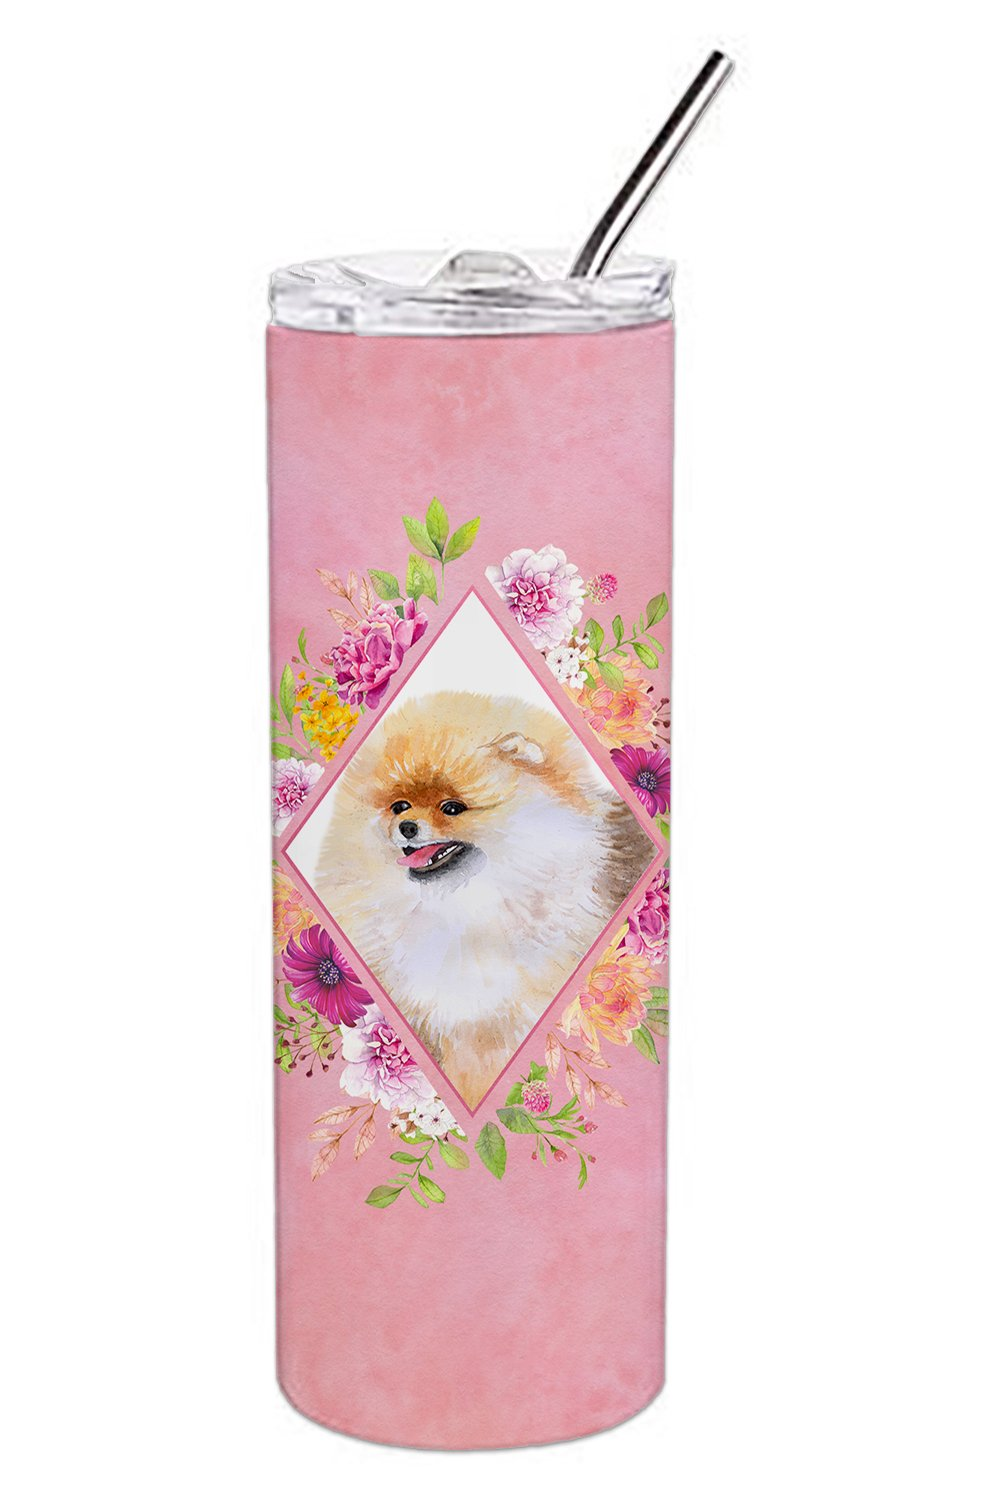 Pomeranian #2 Pink Flowers Double Walled Stainless Steel 20 oz Skinny Tumbler CK4170TBL20 by Caroline's Treasures